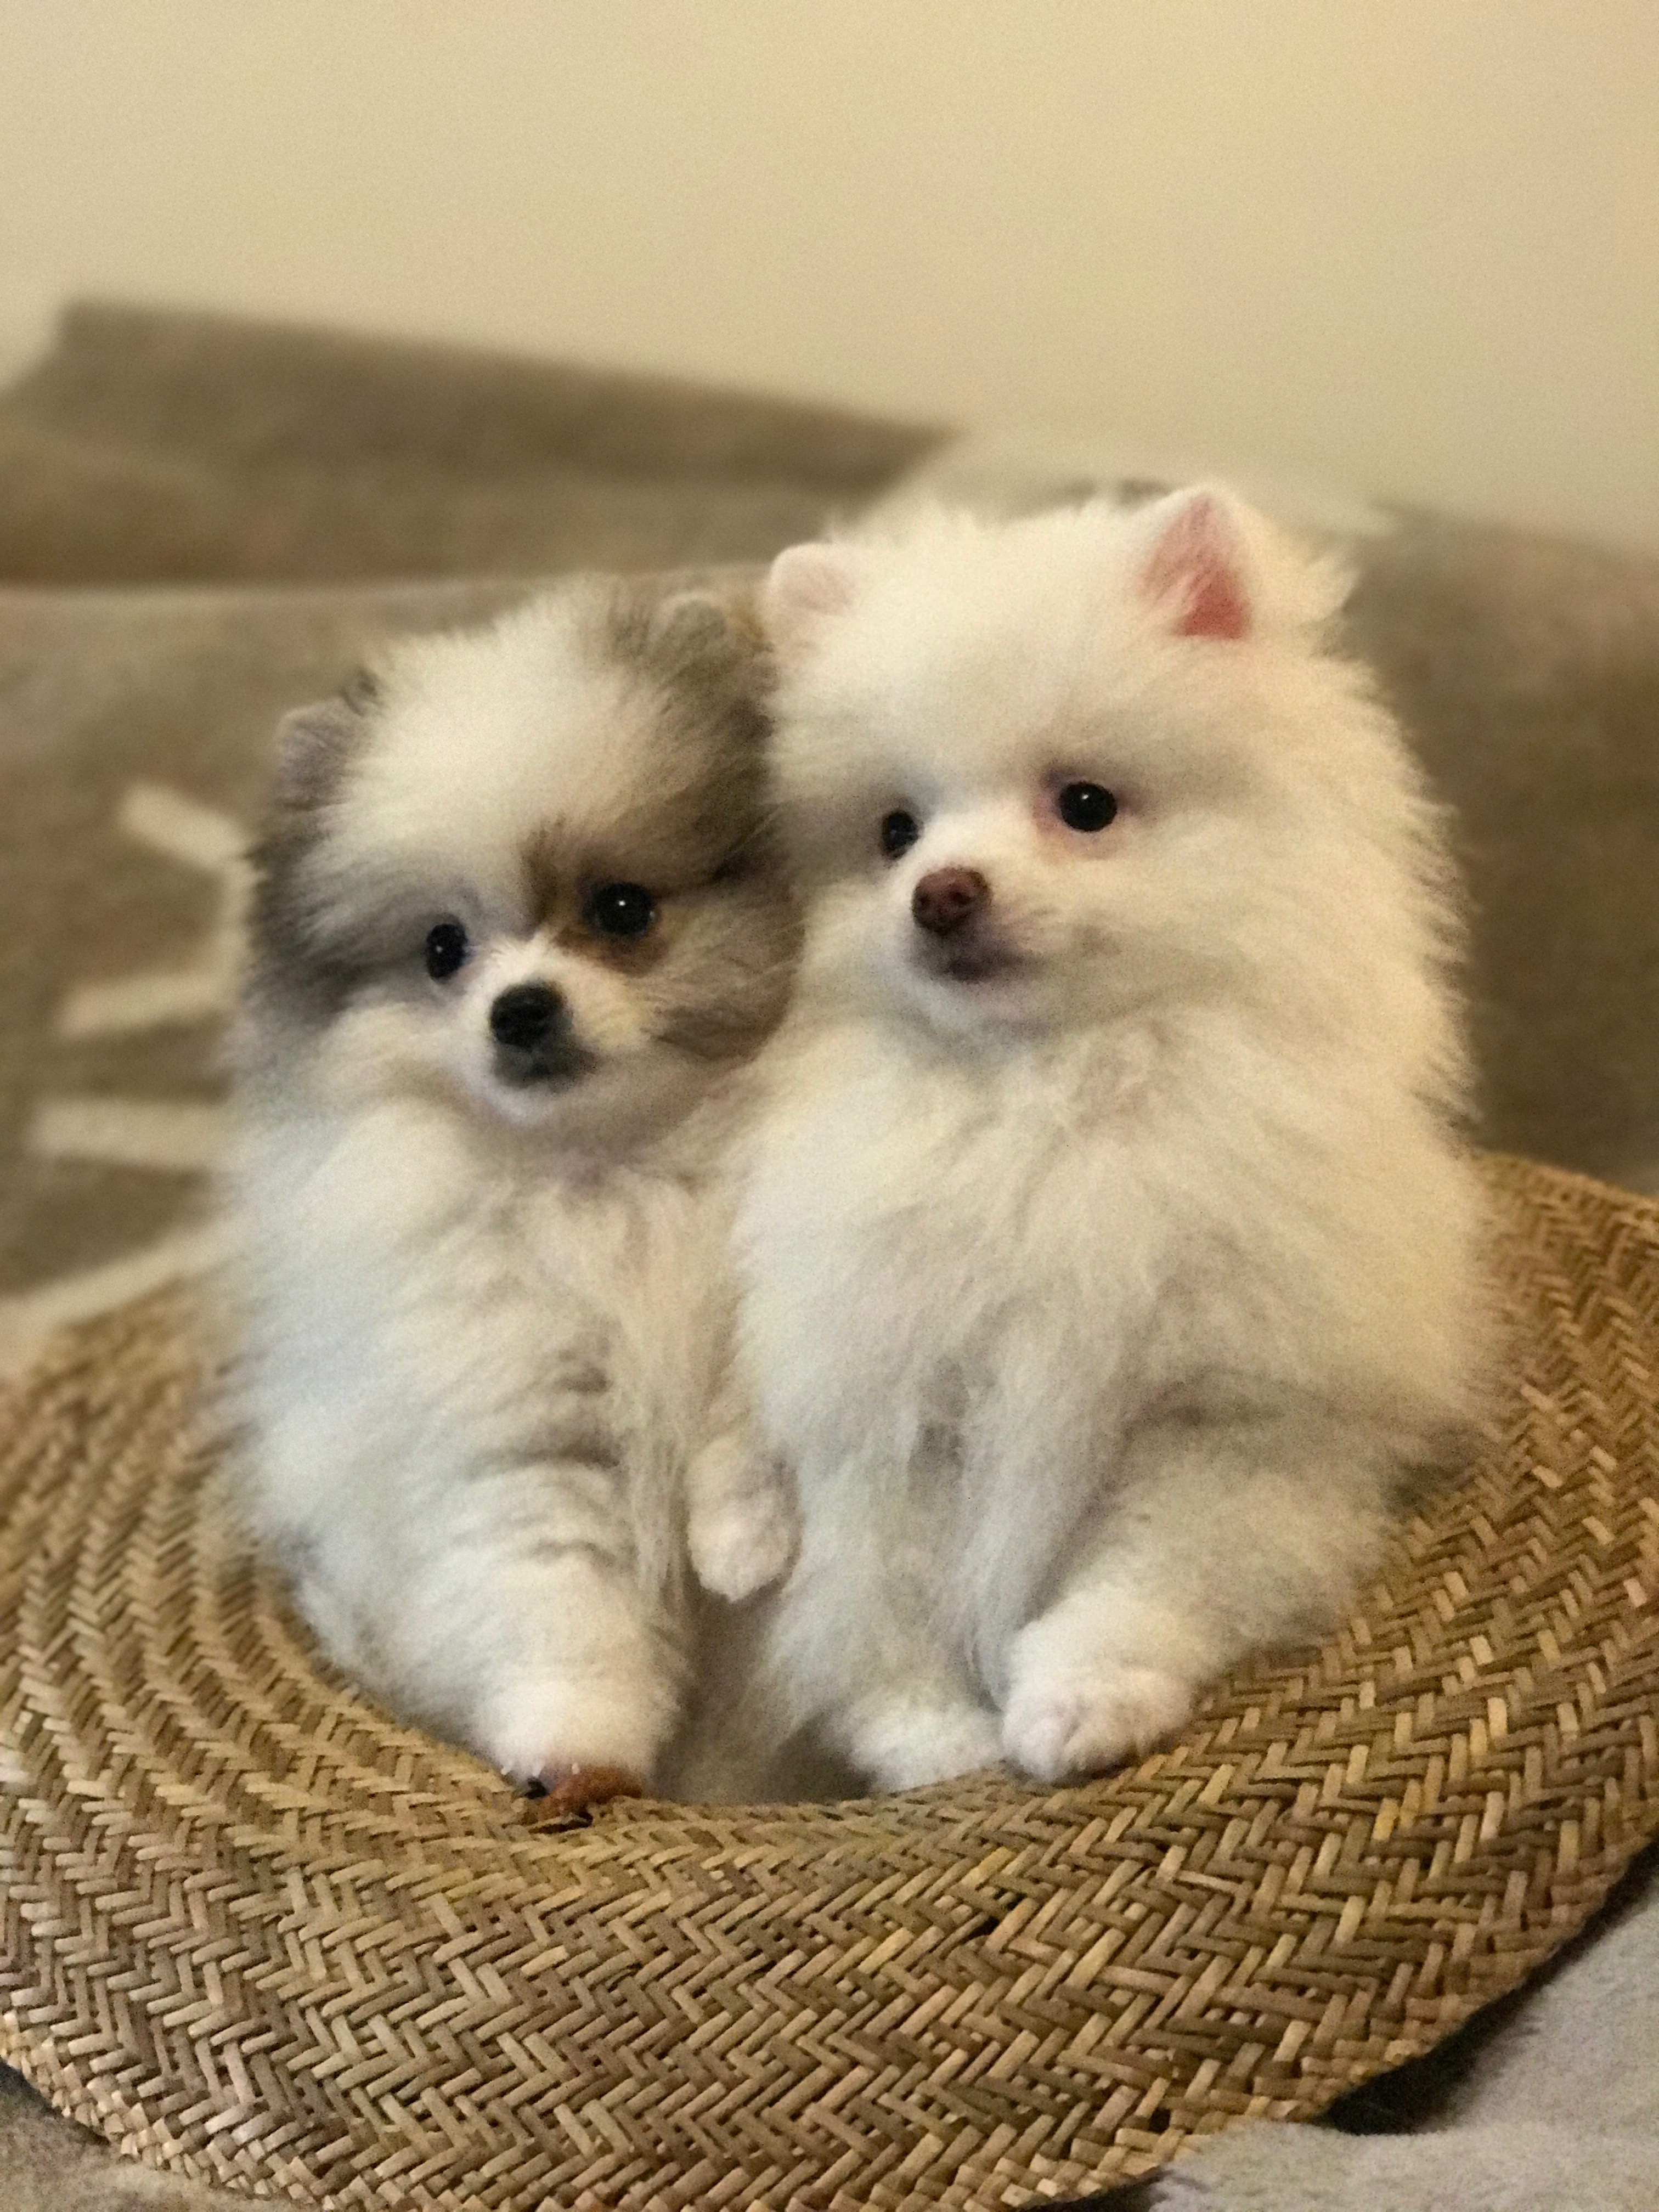 Toby and Luna